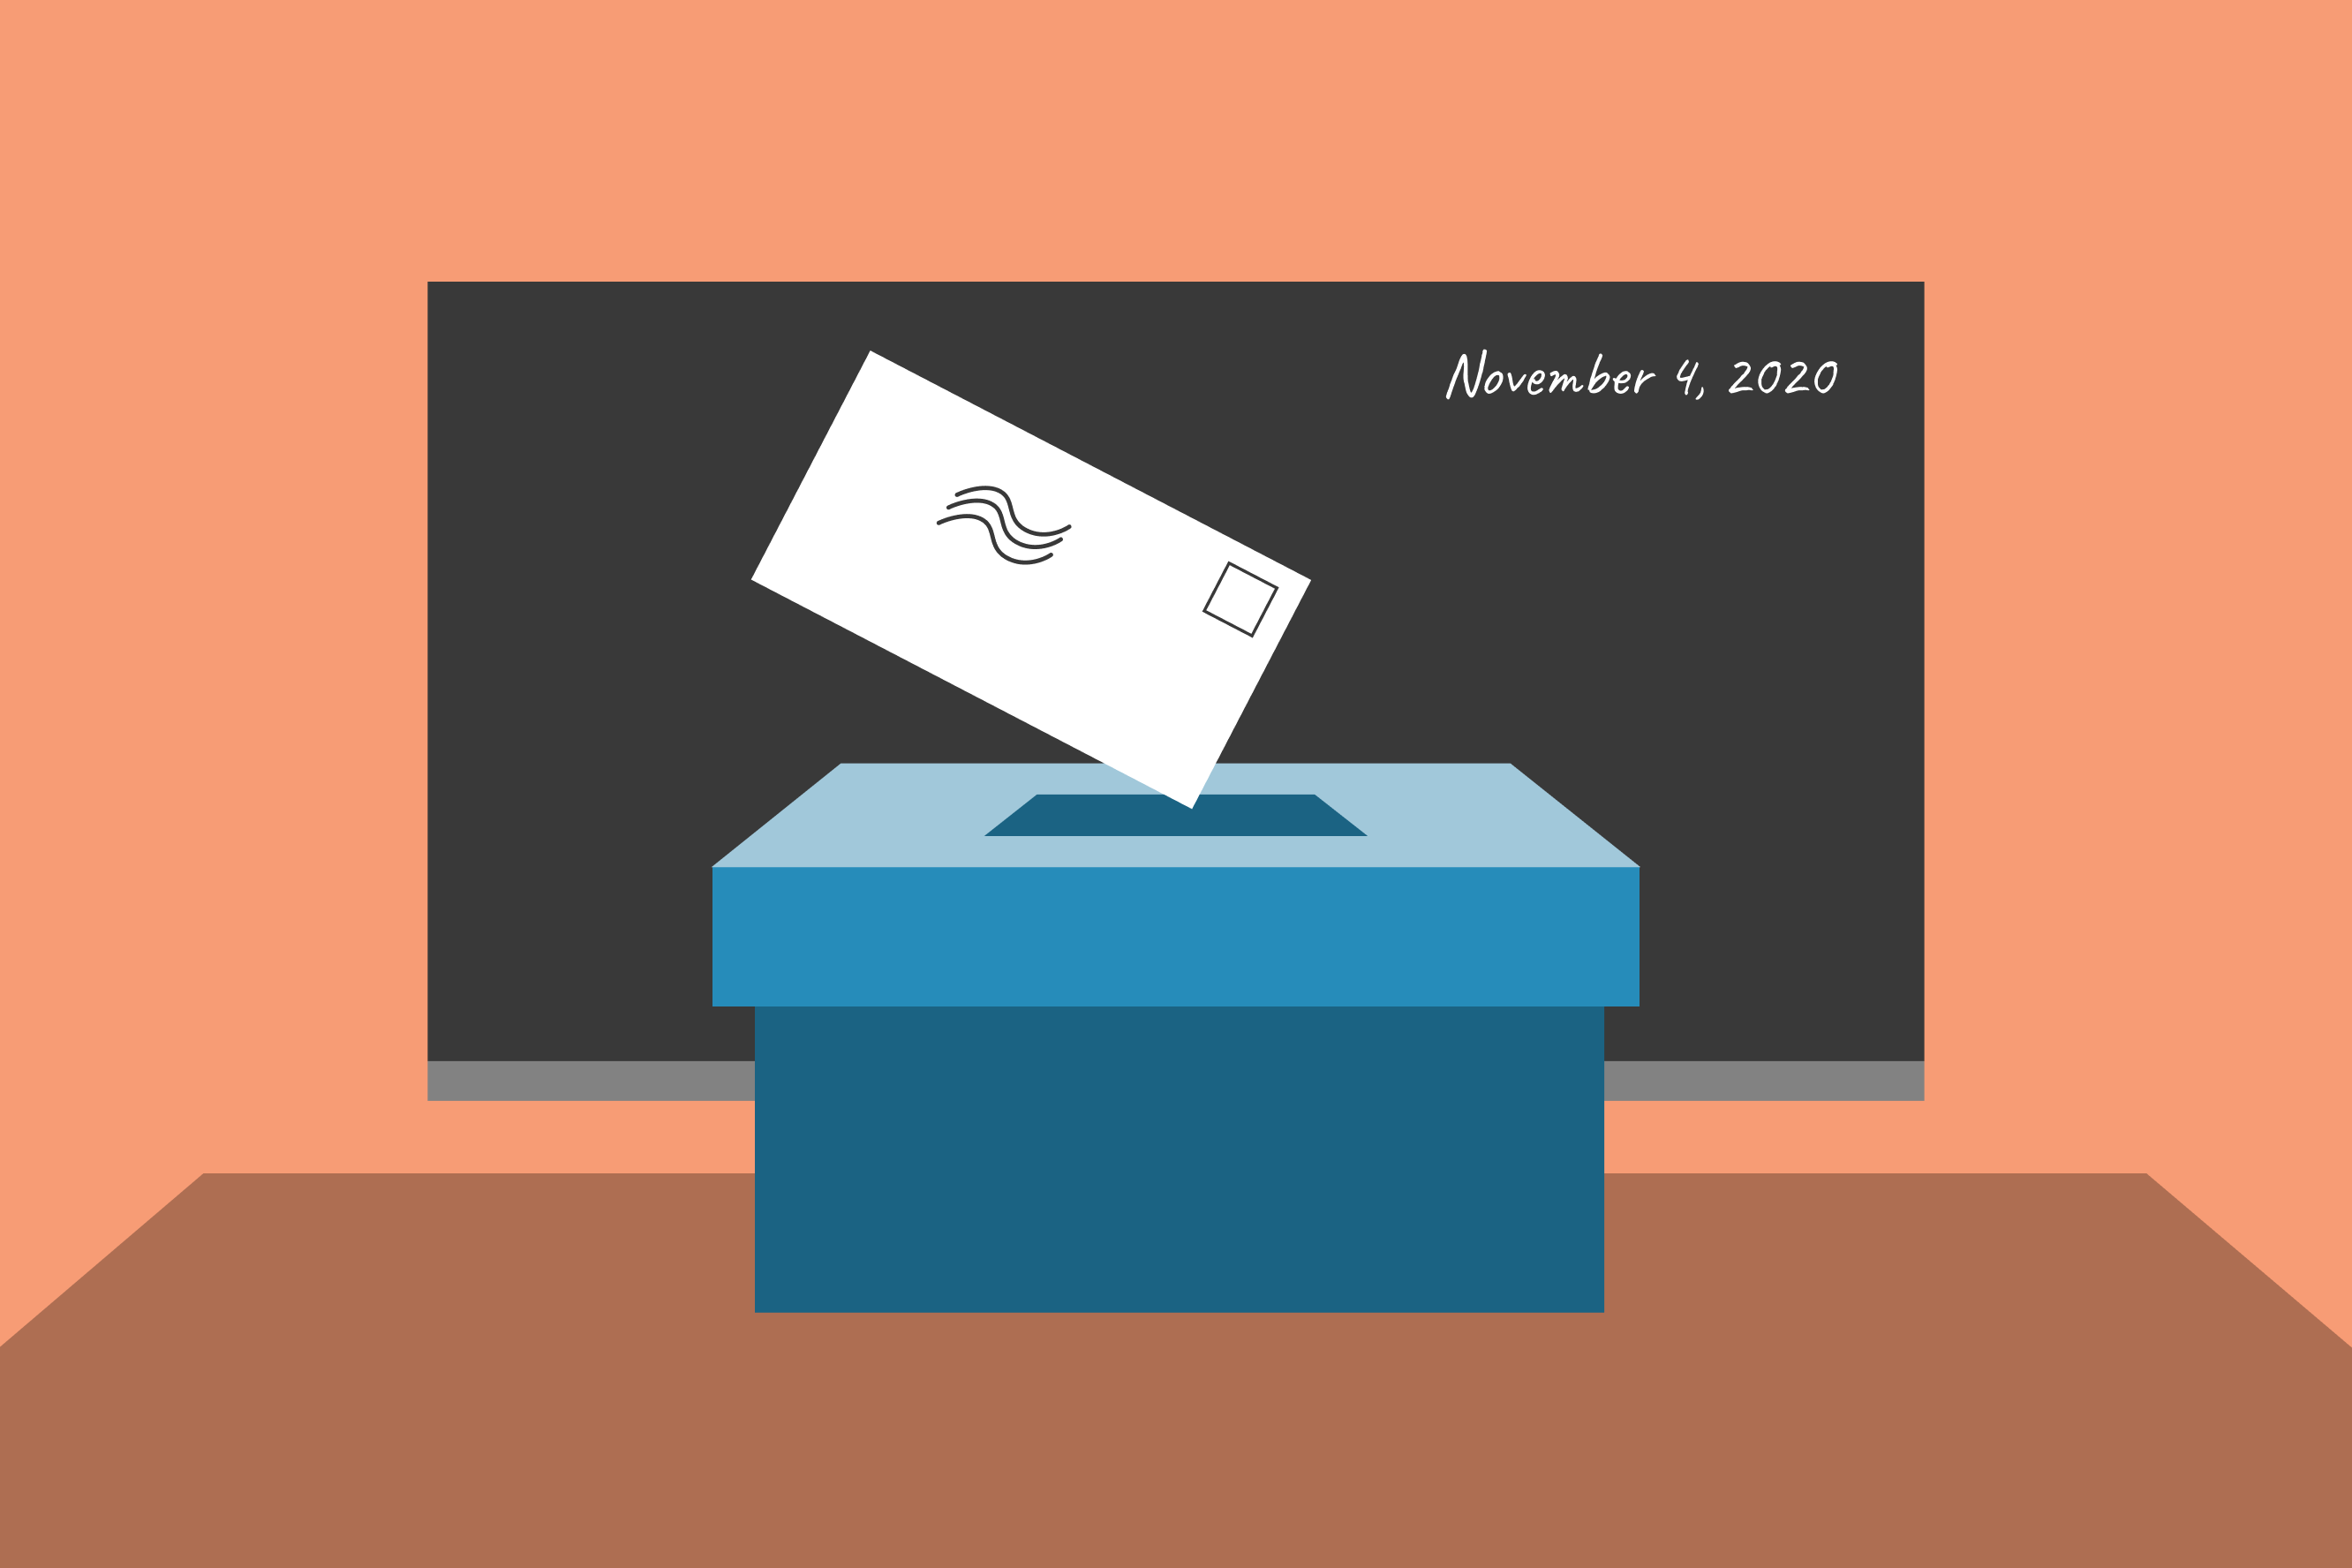 Illustration of a ballot being placed into a ballot box in front of a blackboard that reads November 4, 2020.